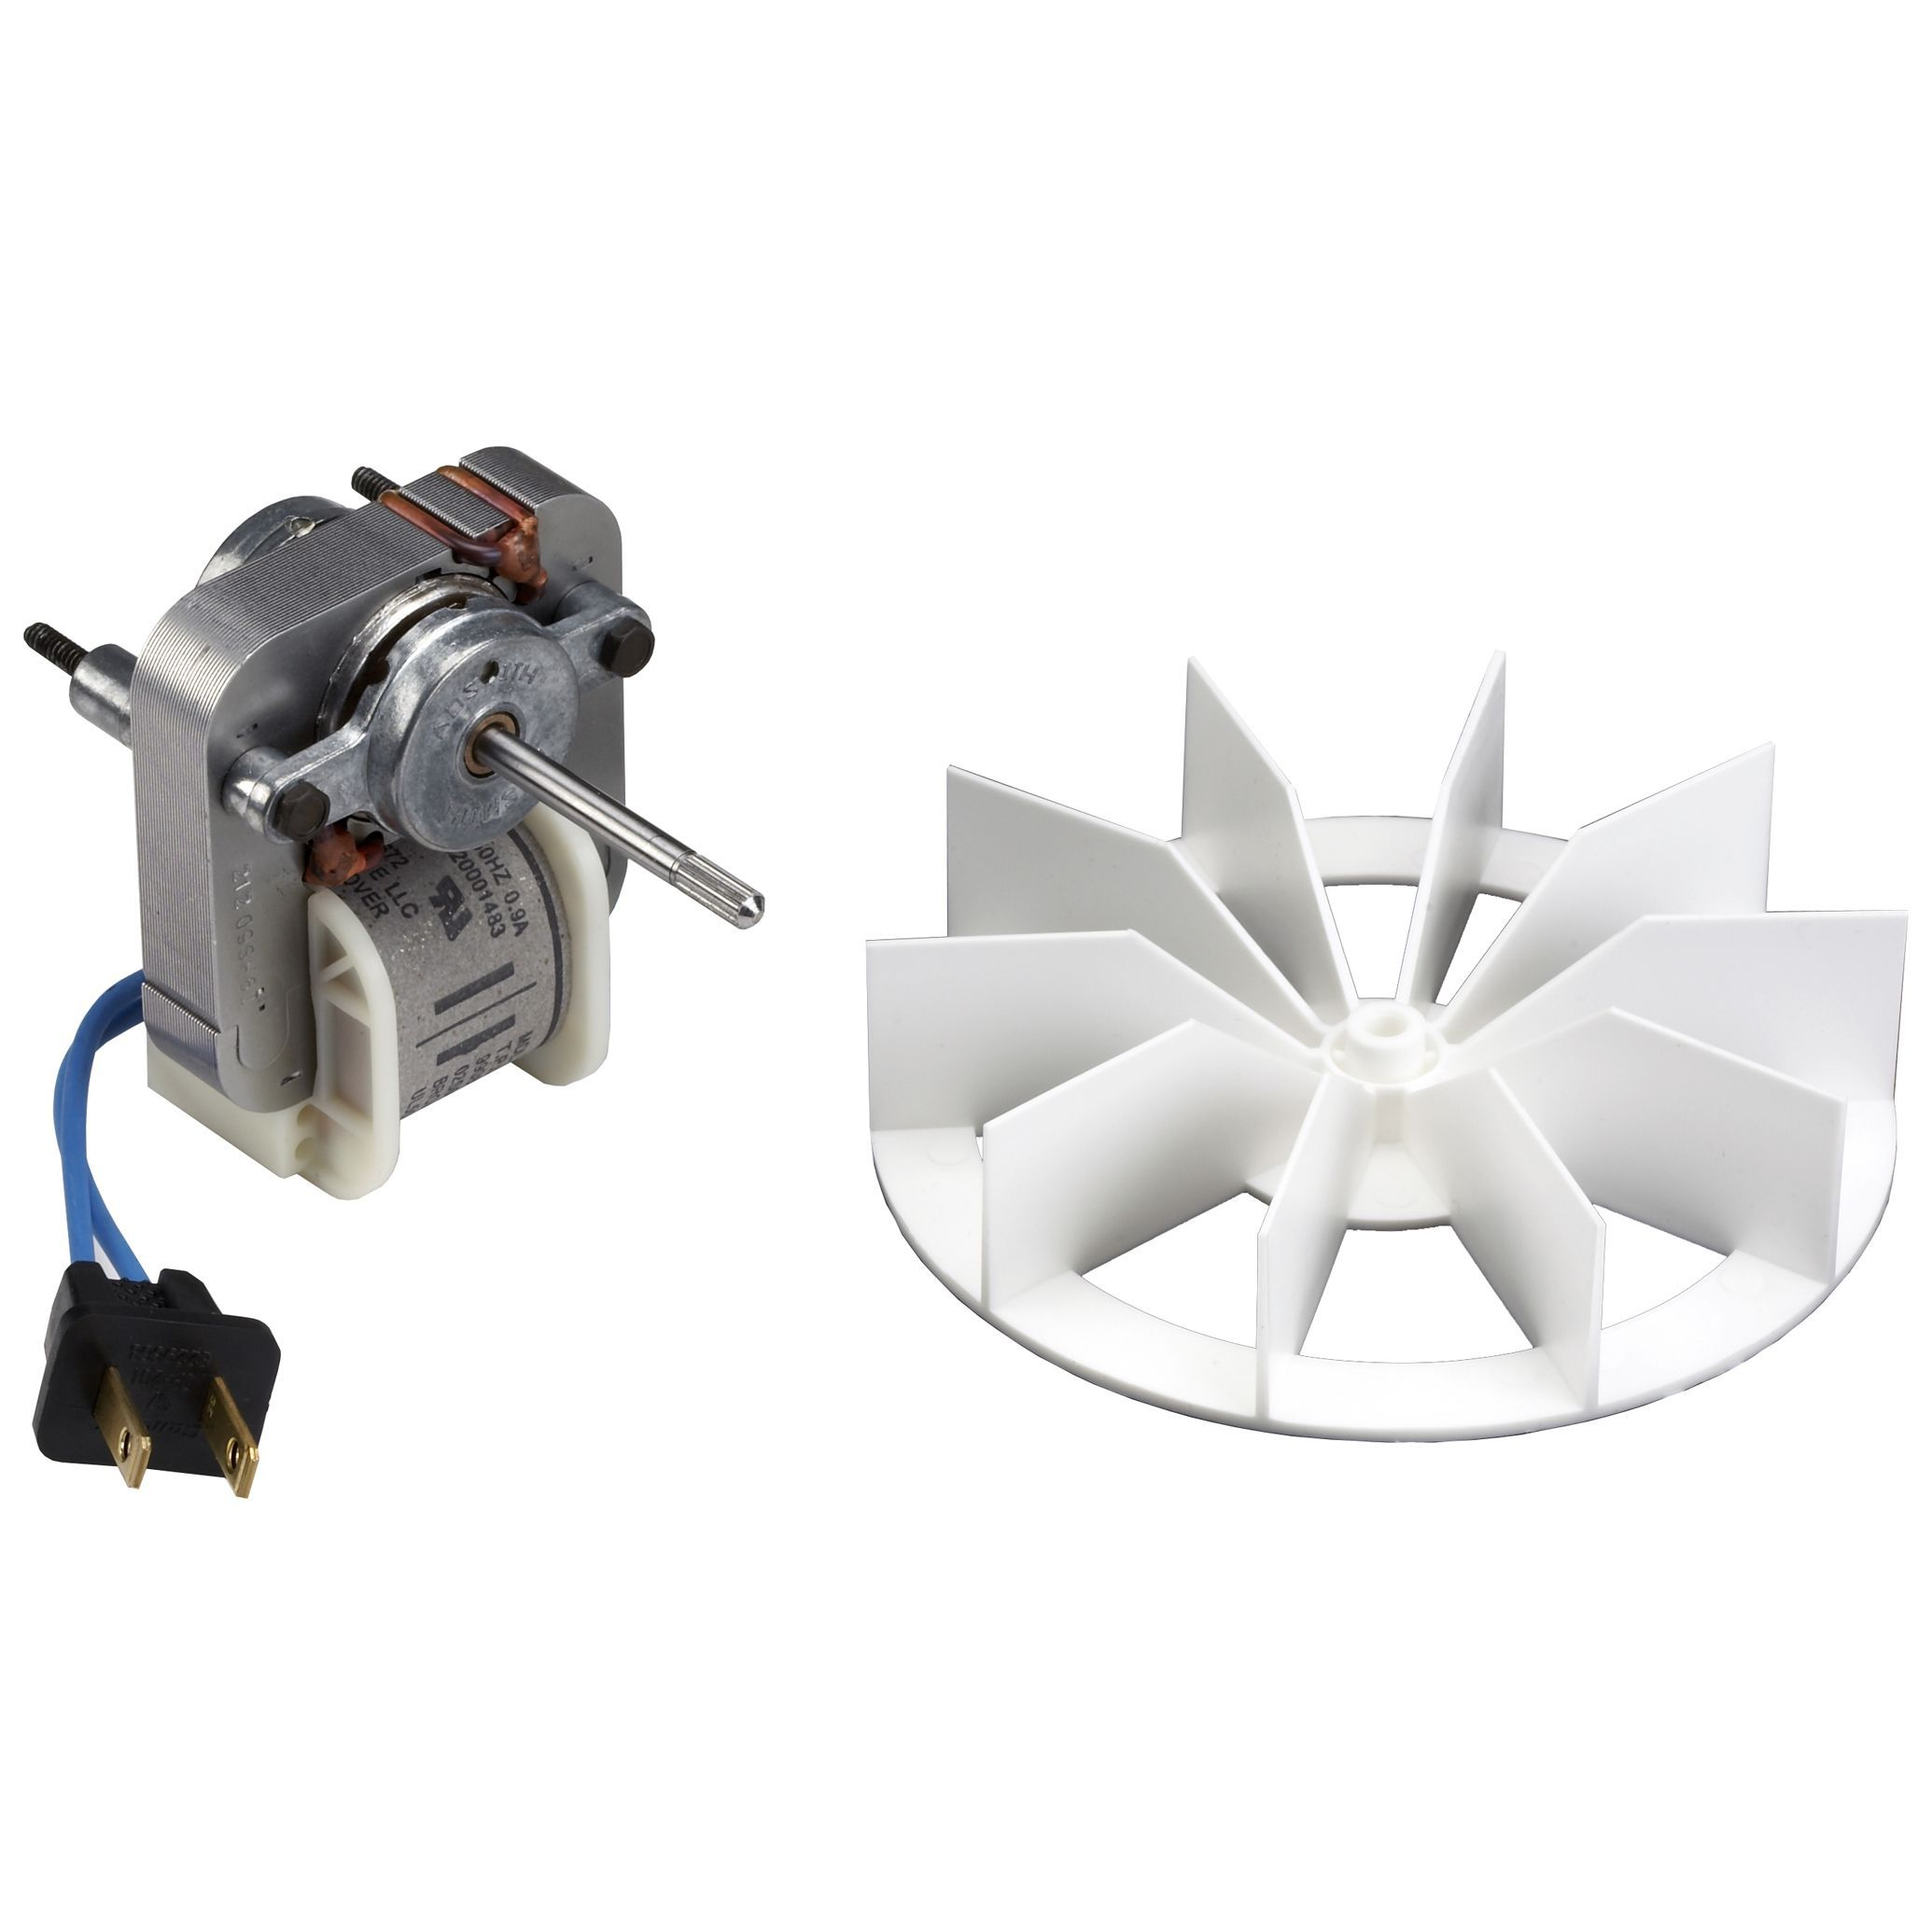 Broan Bp 27 50 Cfm Bathroom Fan Motor Blower Wheel Fan Motor 50 Cfm Silver Plastic Exhaust Fan Motor Bathroom Exhaust Fan Exhaust Fan